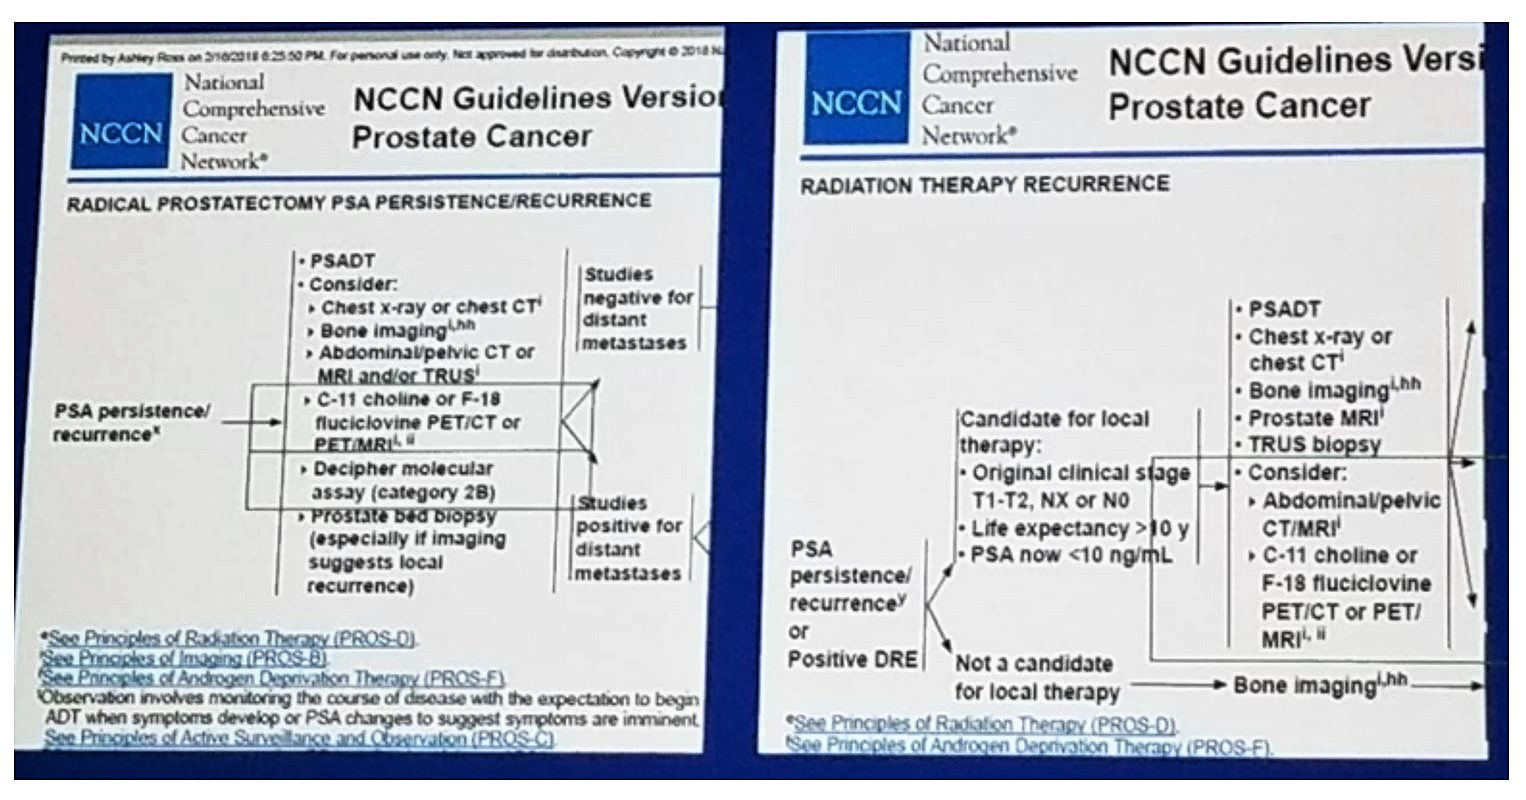 ASCO 2019 NCCN guidelines PCa